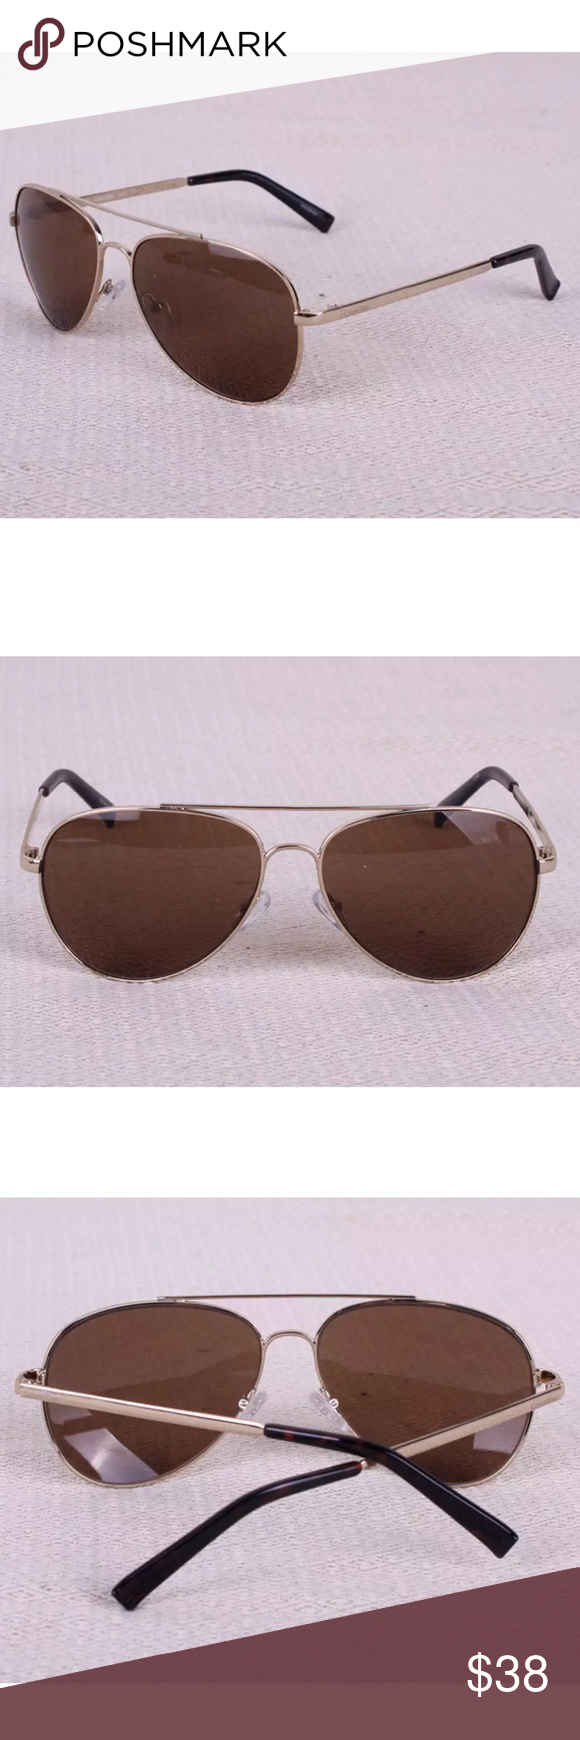 f2d4c605dd38 Calvin Klein Men's Sunglasses R159S 717 Gold Brown Color: Gold and Brown  Model: R159S 717 Retail at $68.00 All brand new and 100% authentic.